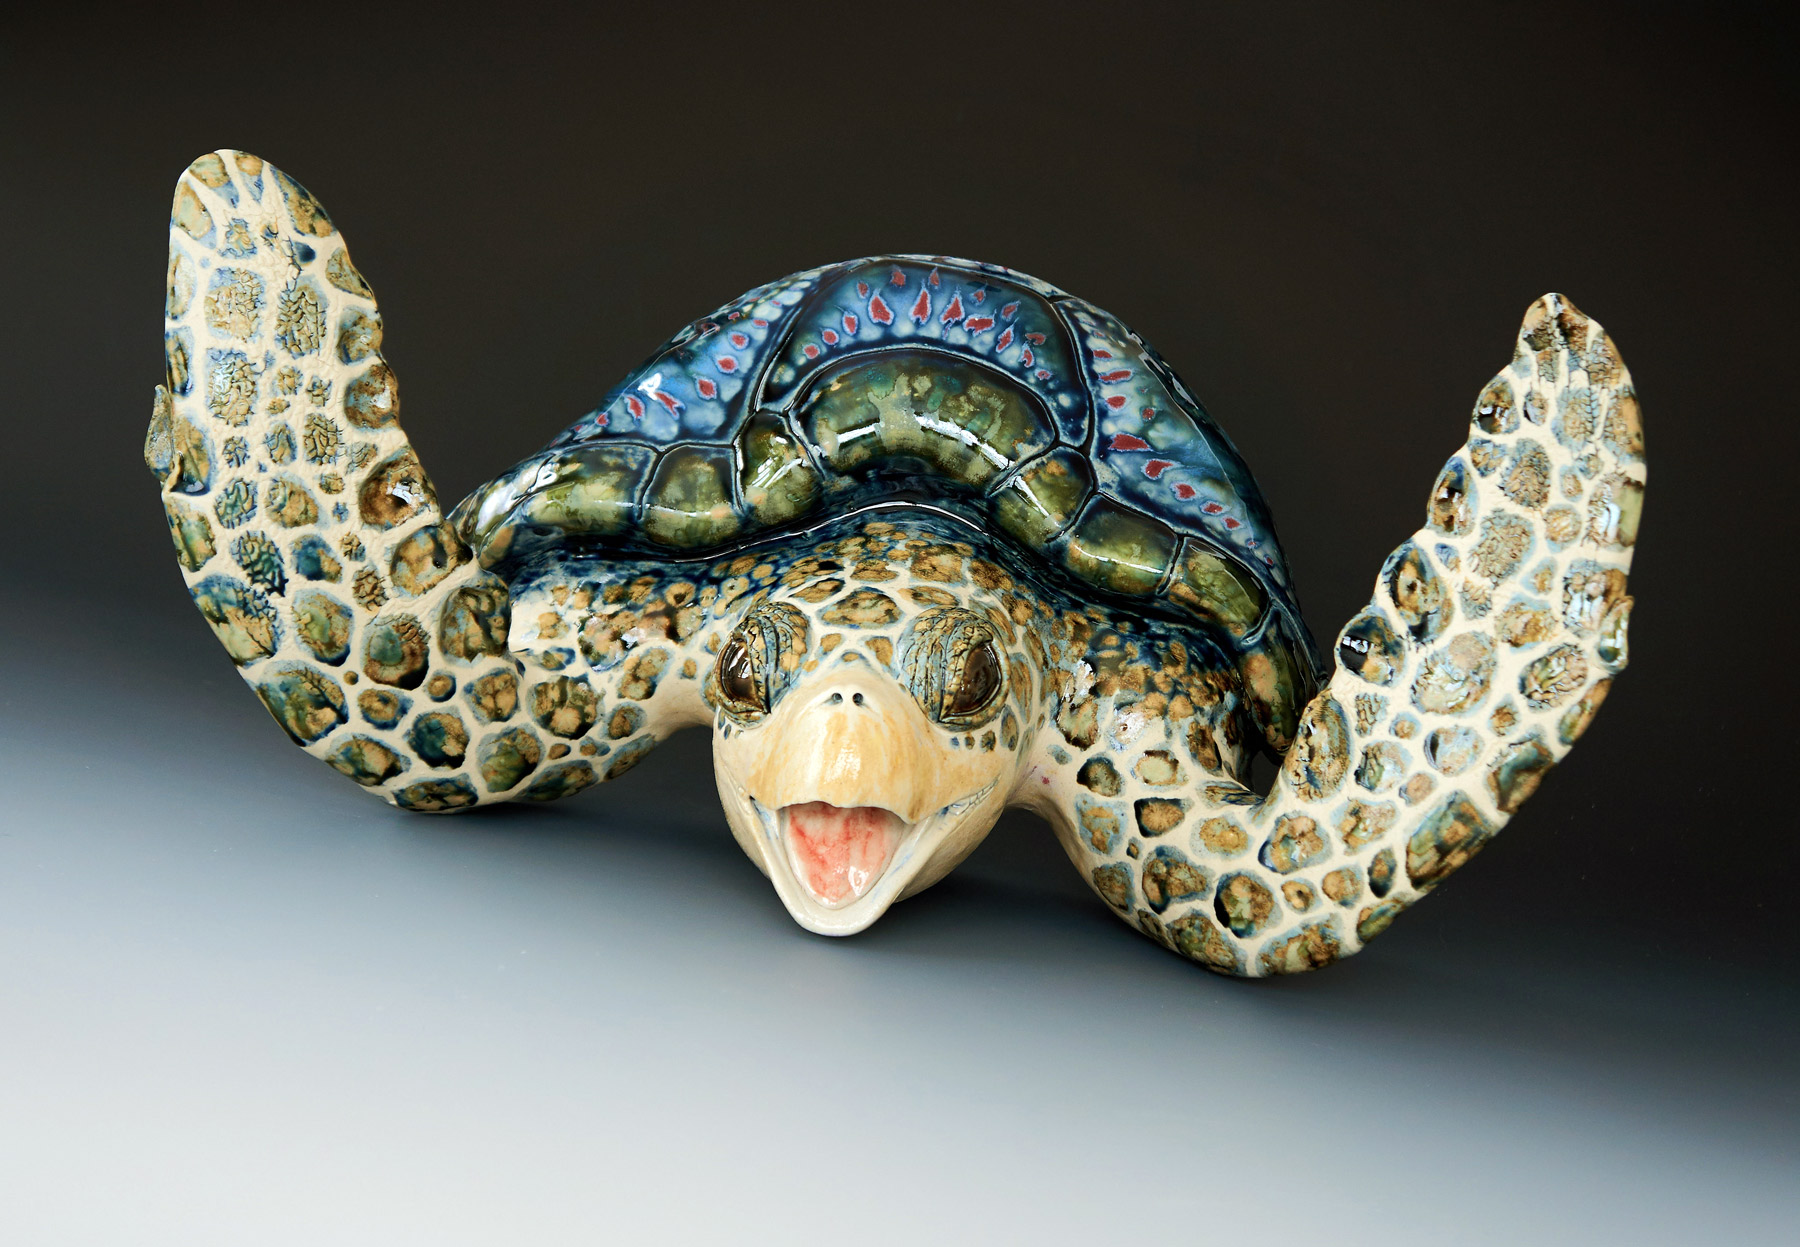 Large Wall Hanging Sea Turtle, 20 inches wide.